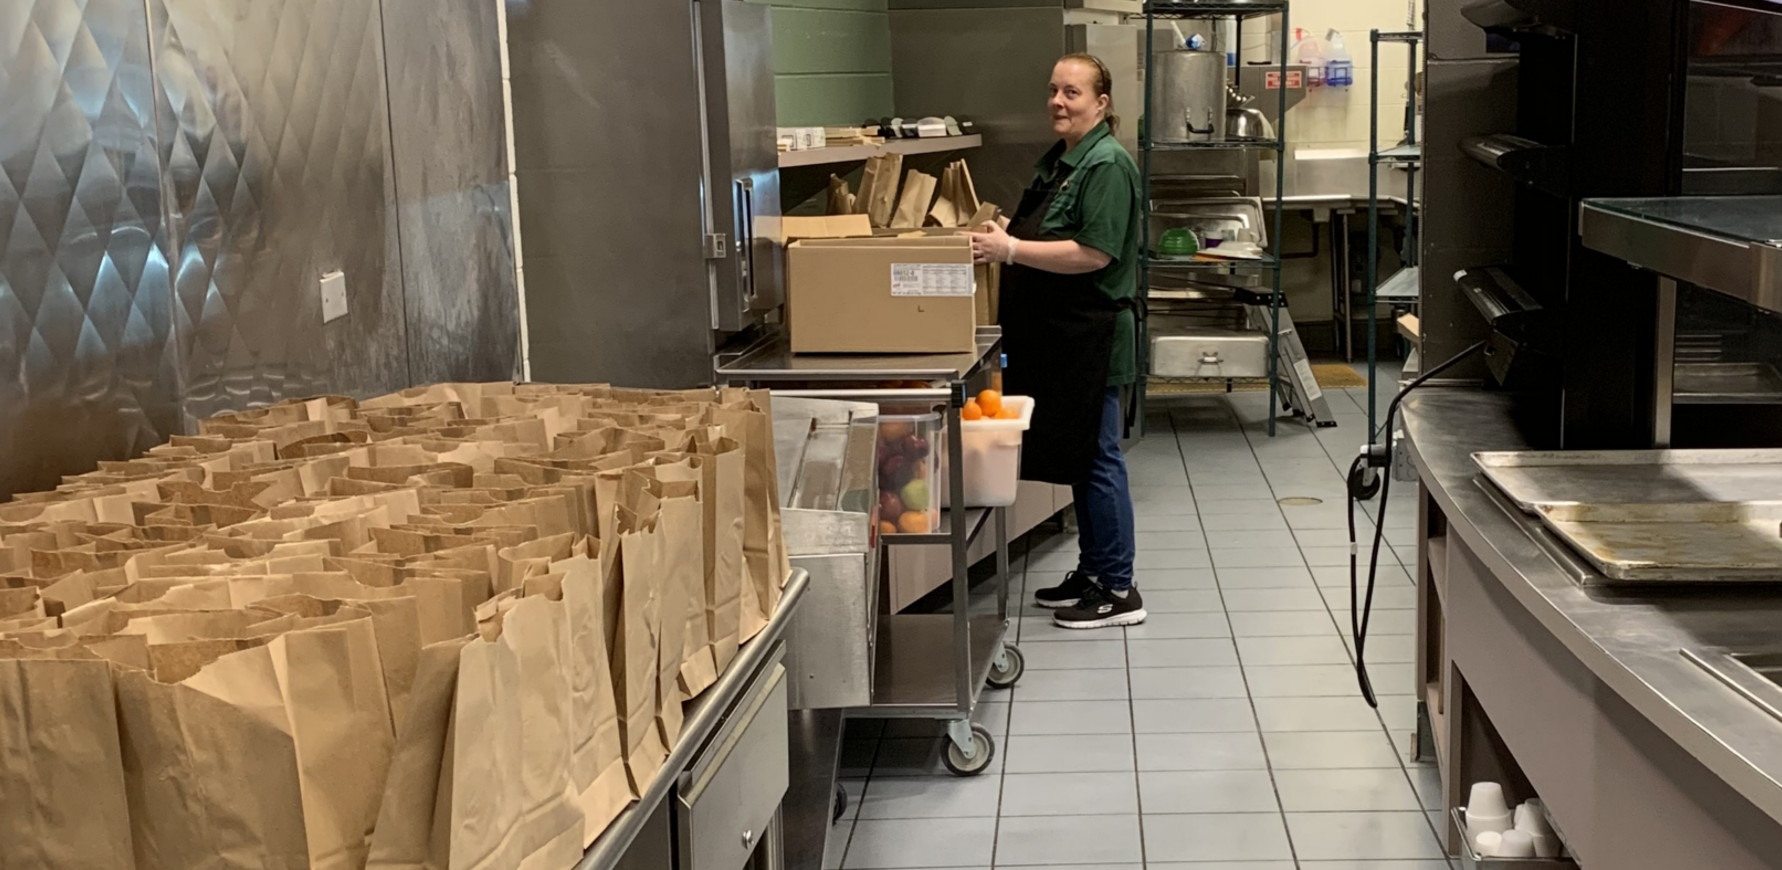 Student Meal Pick-Up Program Heroes!